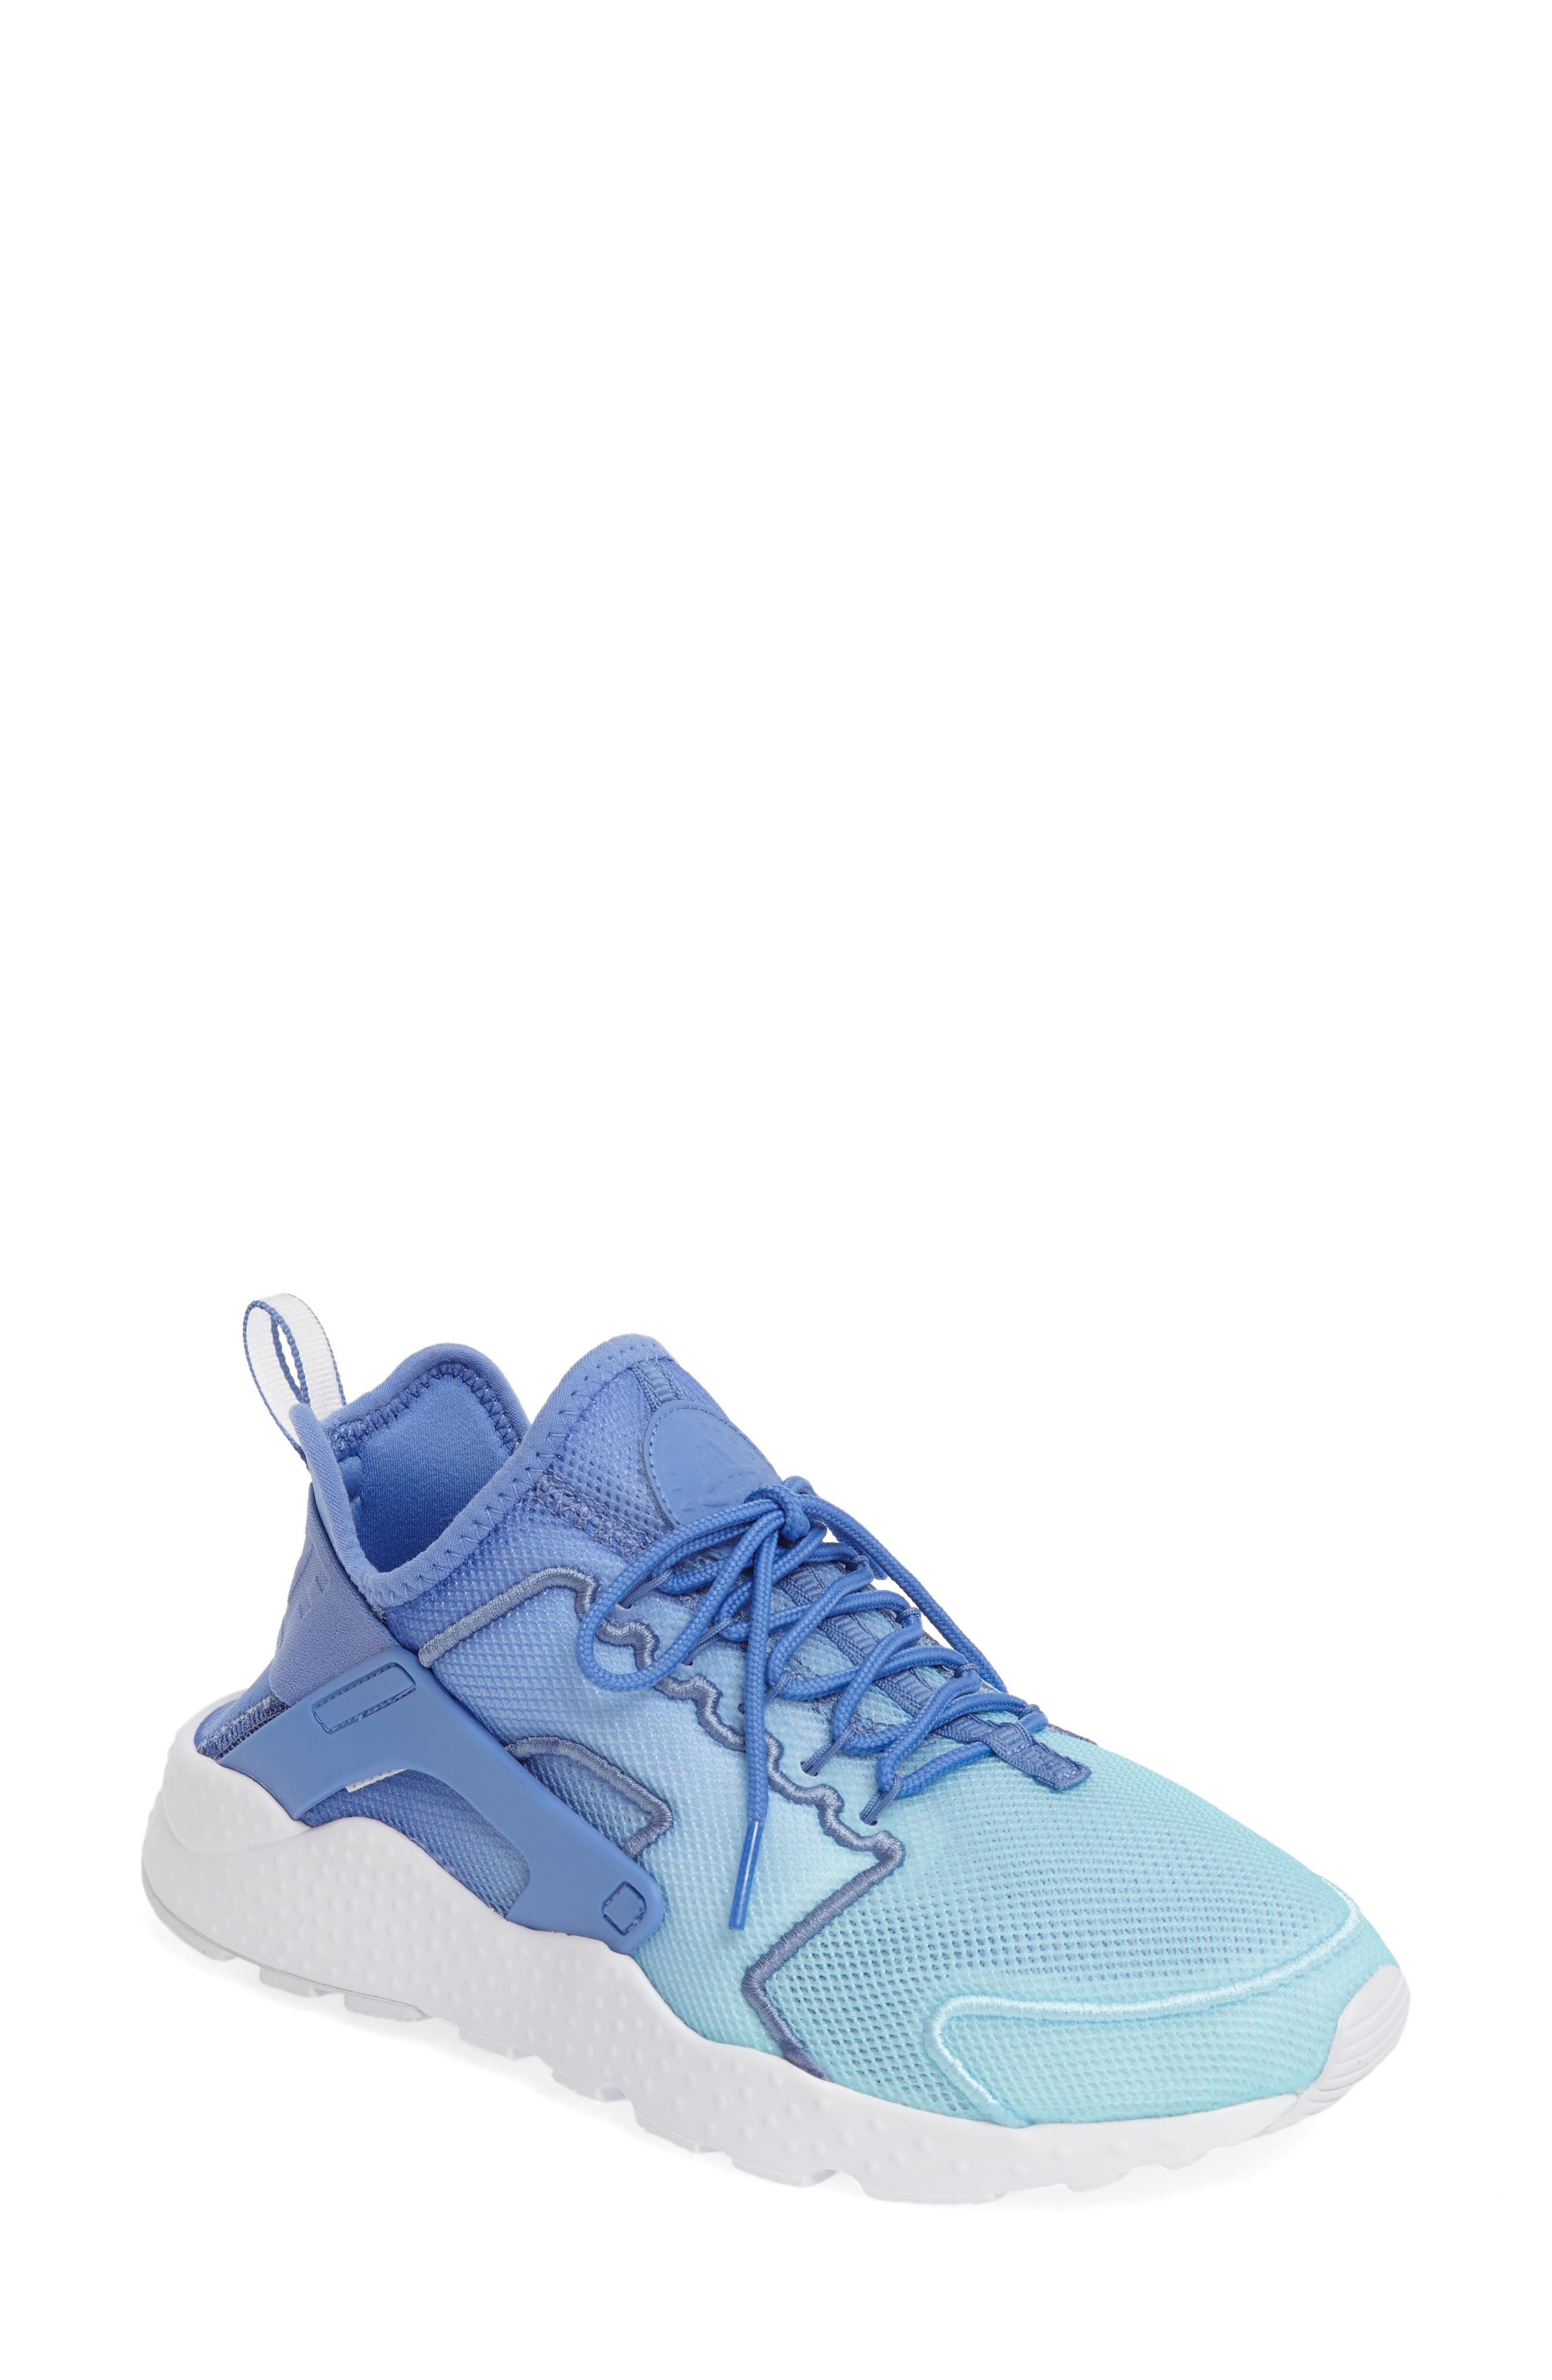 Main Image - Nike 'Air Huarache Run Ultra Mesh' Sneaker (Women)